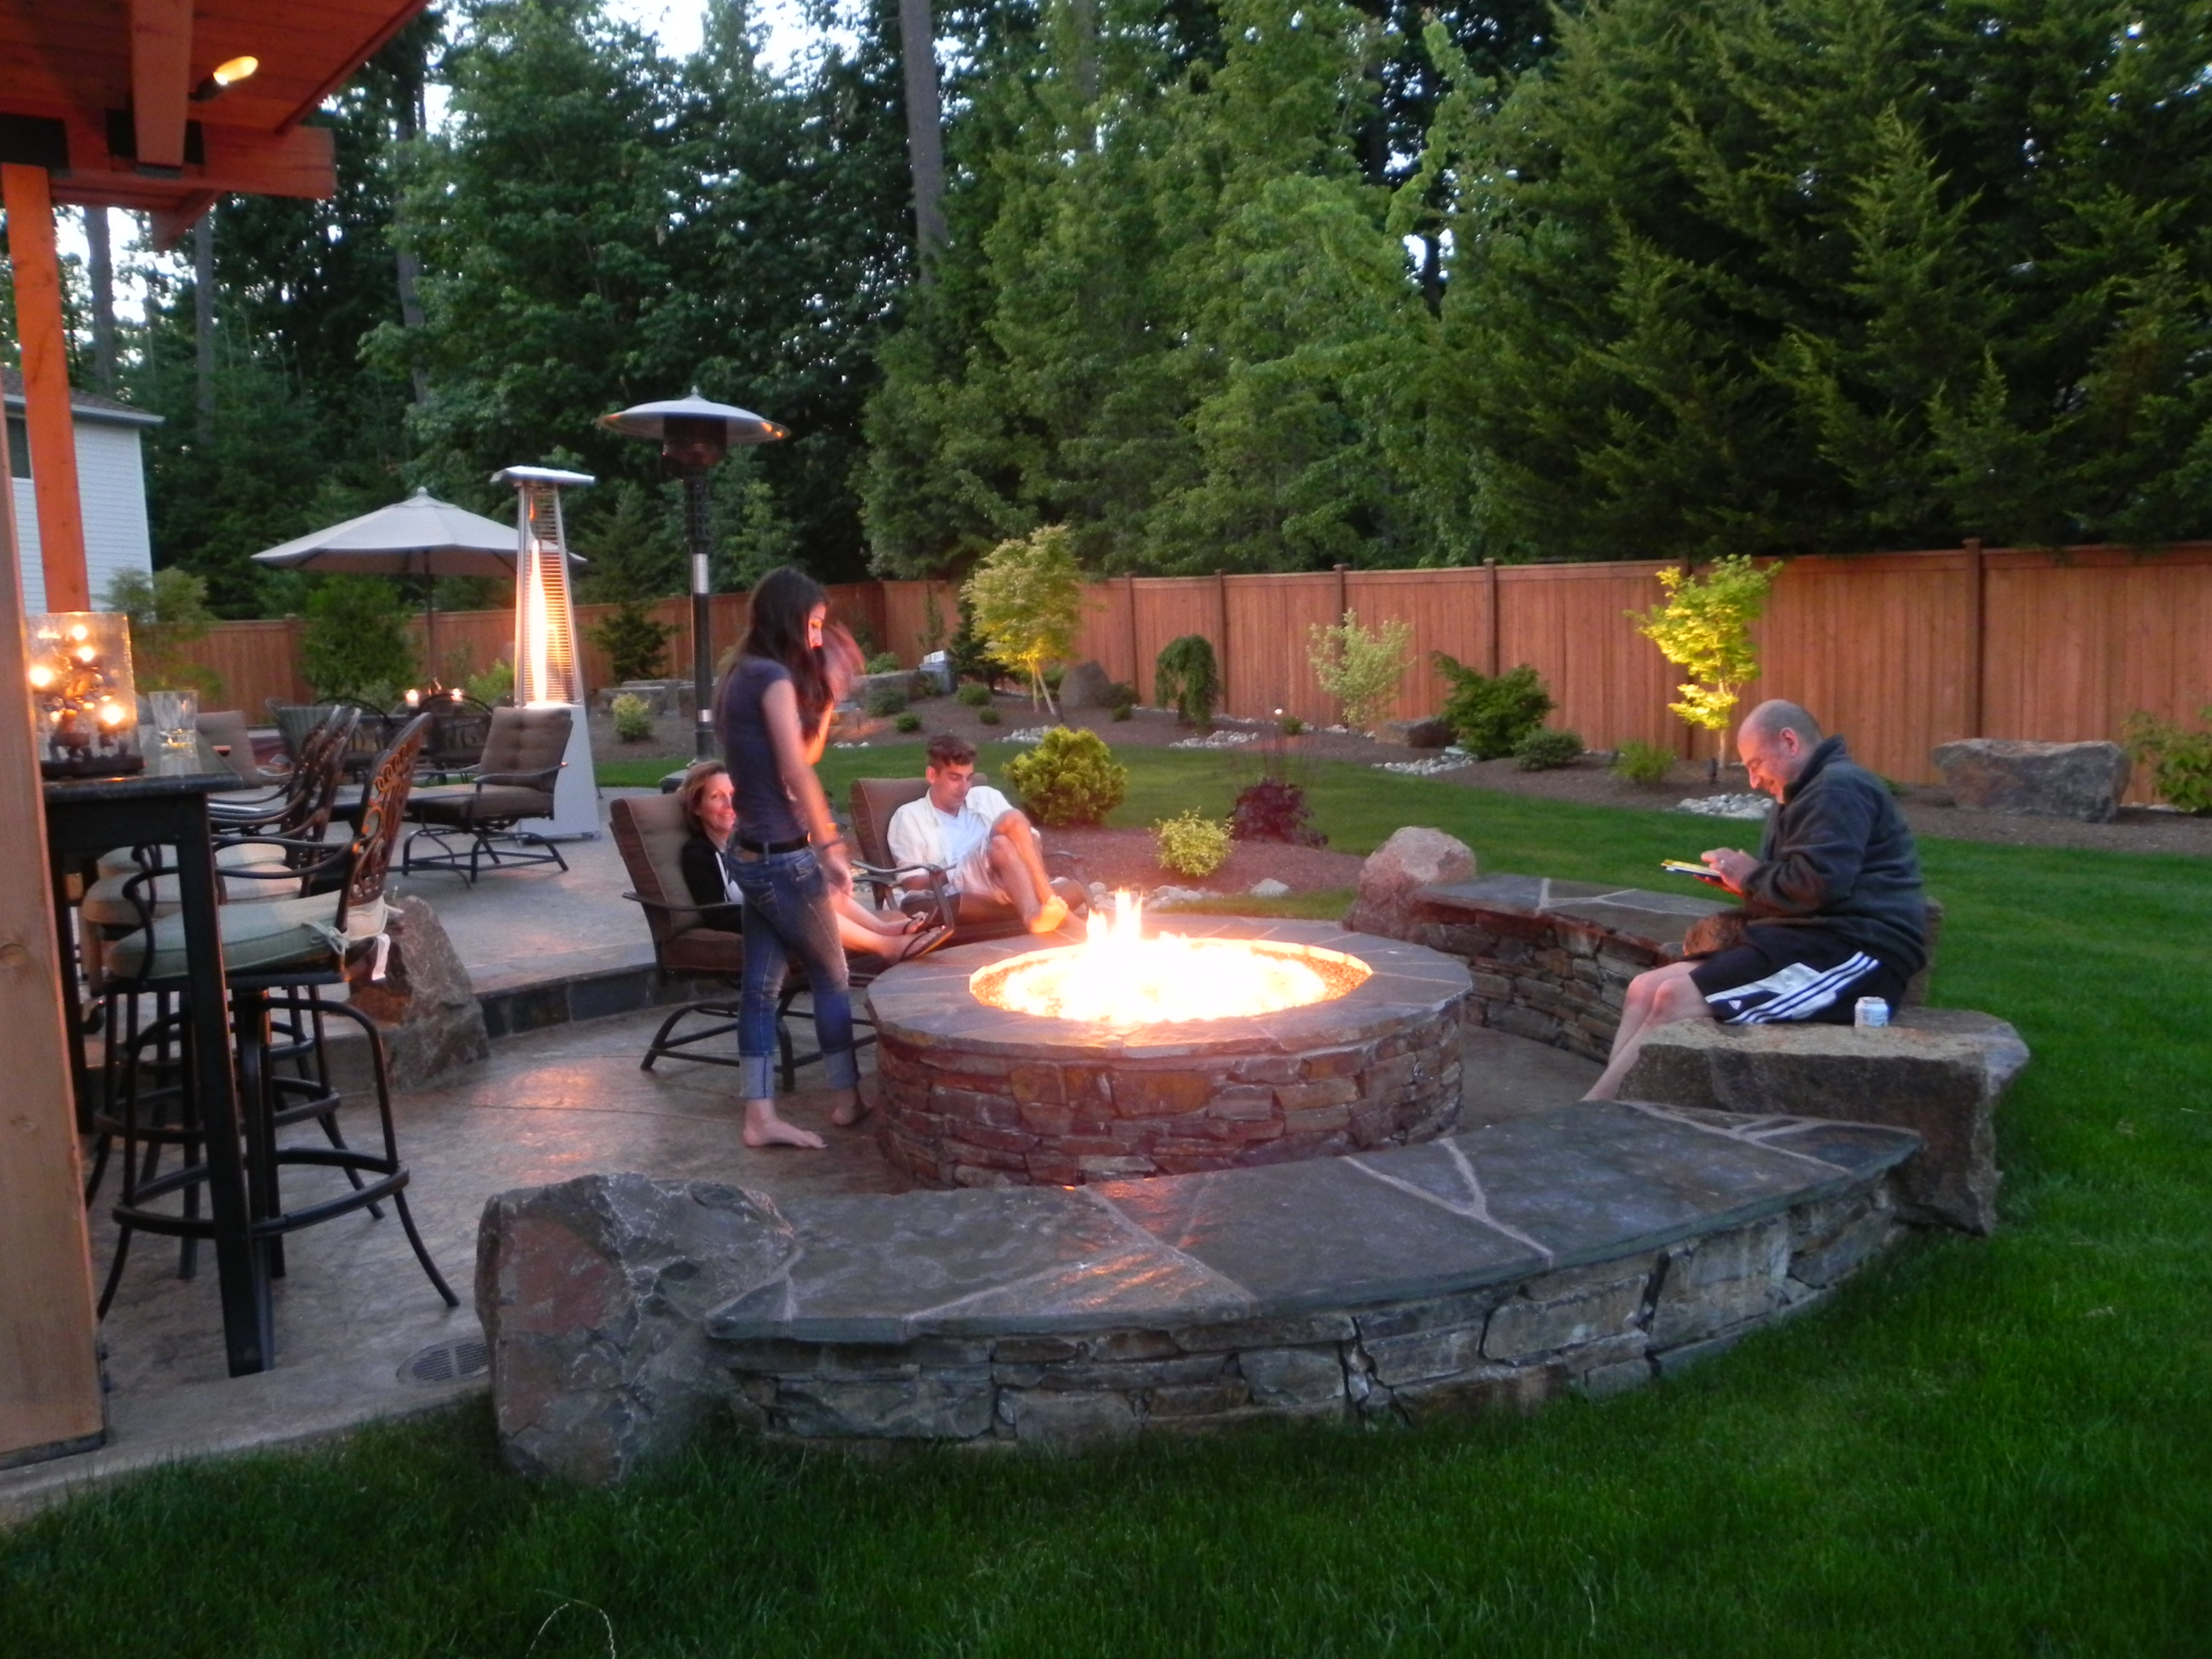 Outdoor Fire Pit Patio Design Simple Backyard Fire Pit Ideas with regard to 14 Awesome Ways How to Improve Backyard Fire Pits Ideas